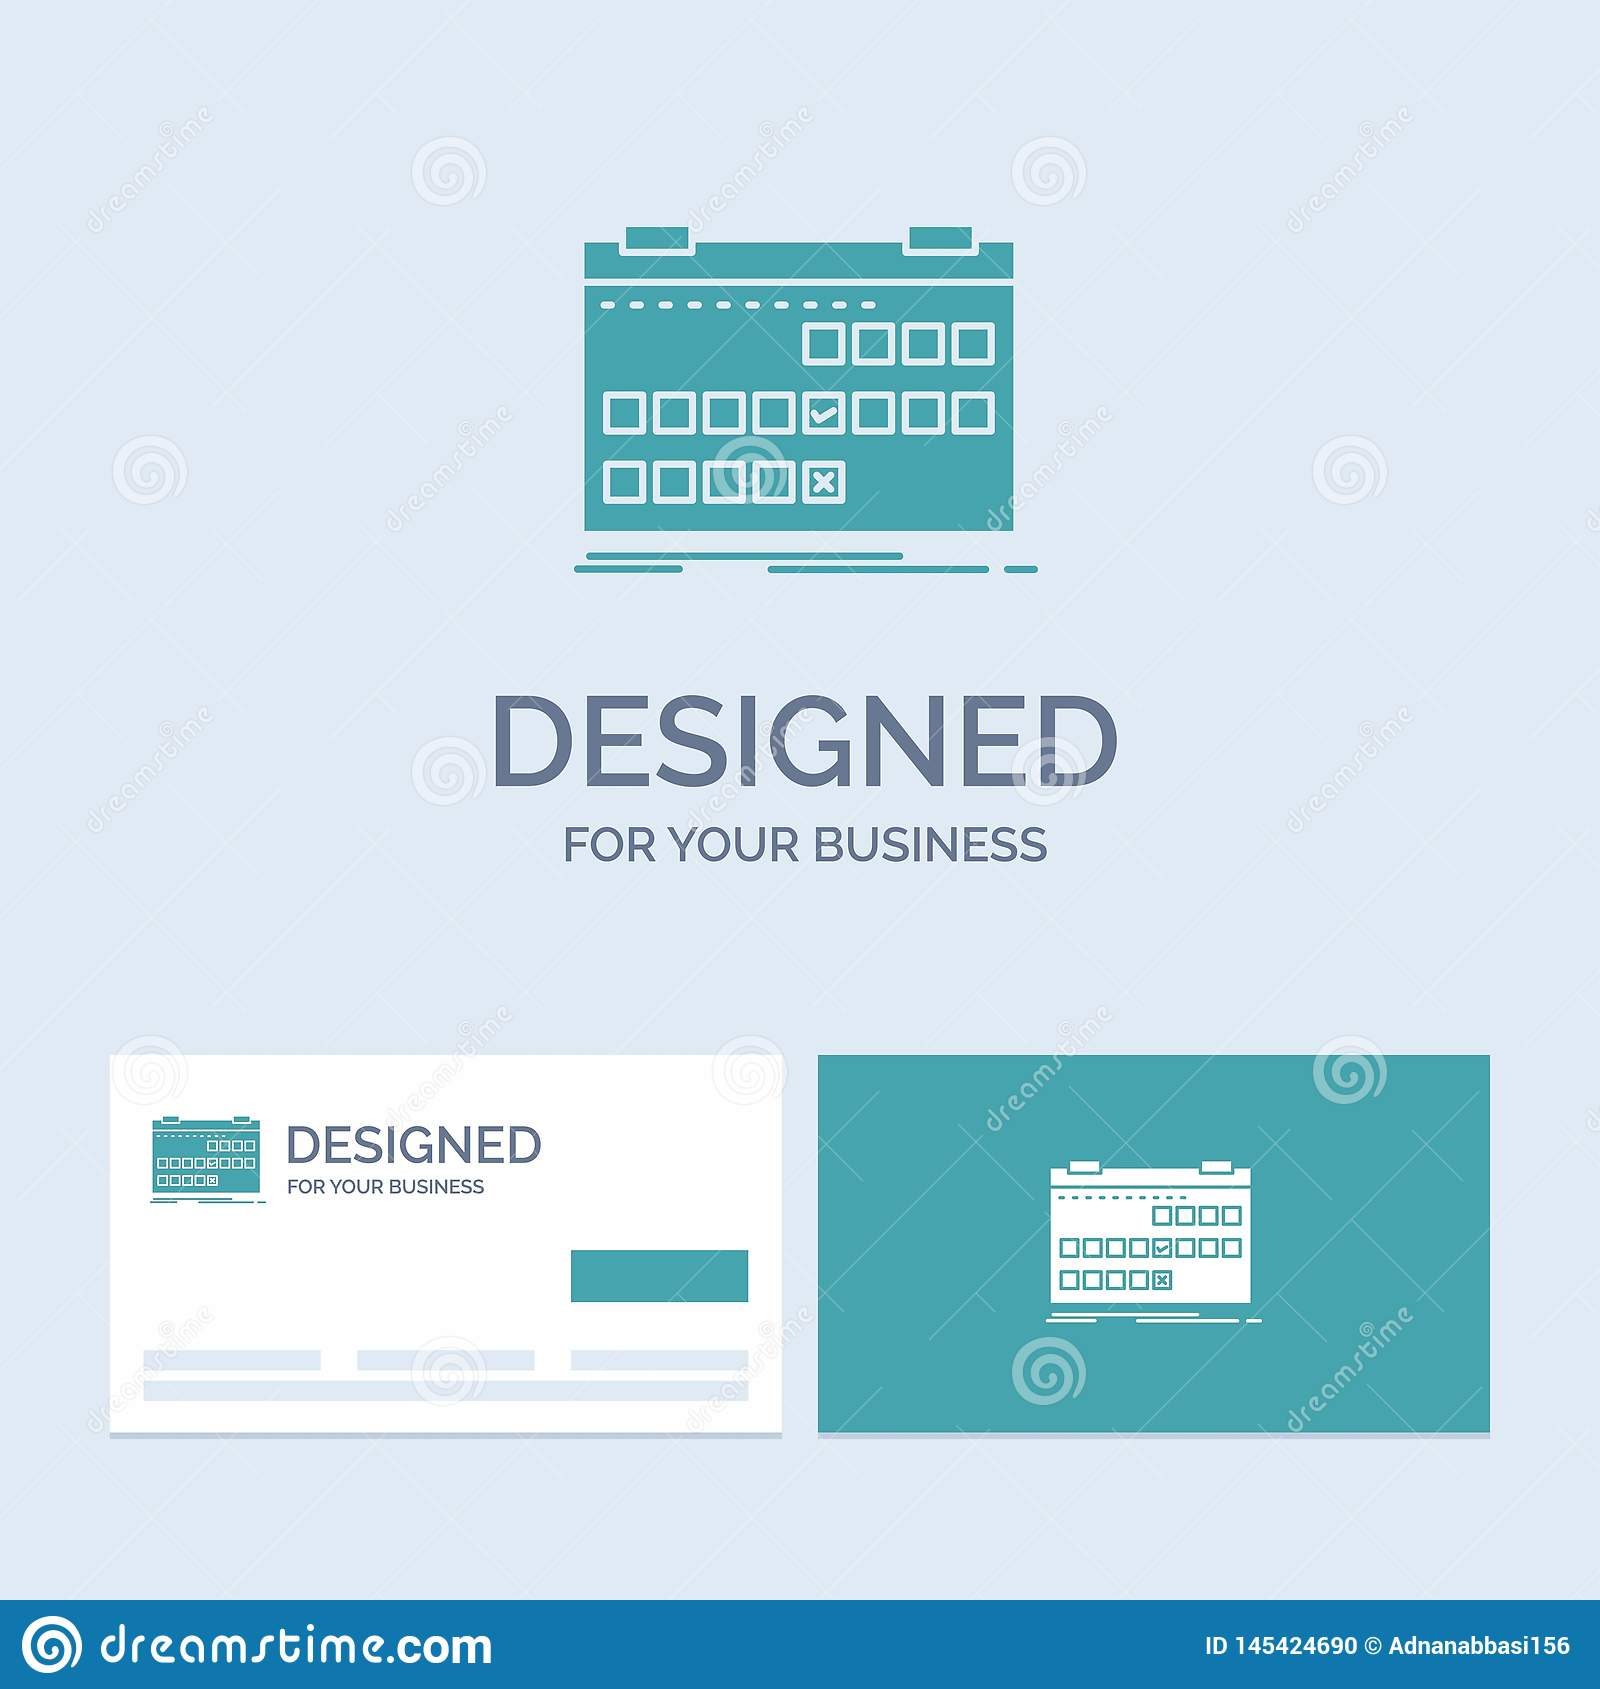 Calendar, date, event, release, schedule Business Logo Glyph Icon Symbol for your business. Turquoise Business Cards with Brand